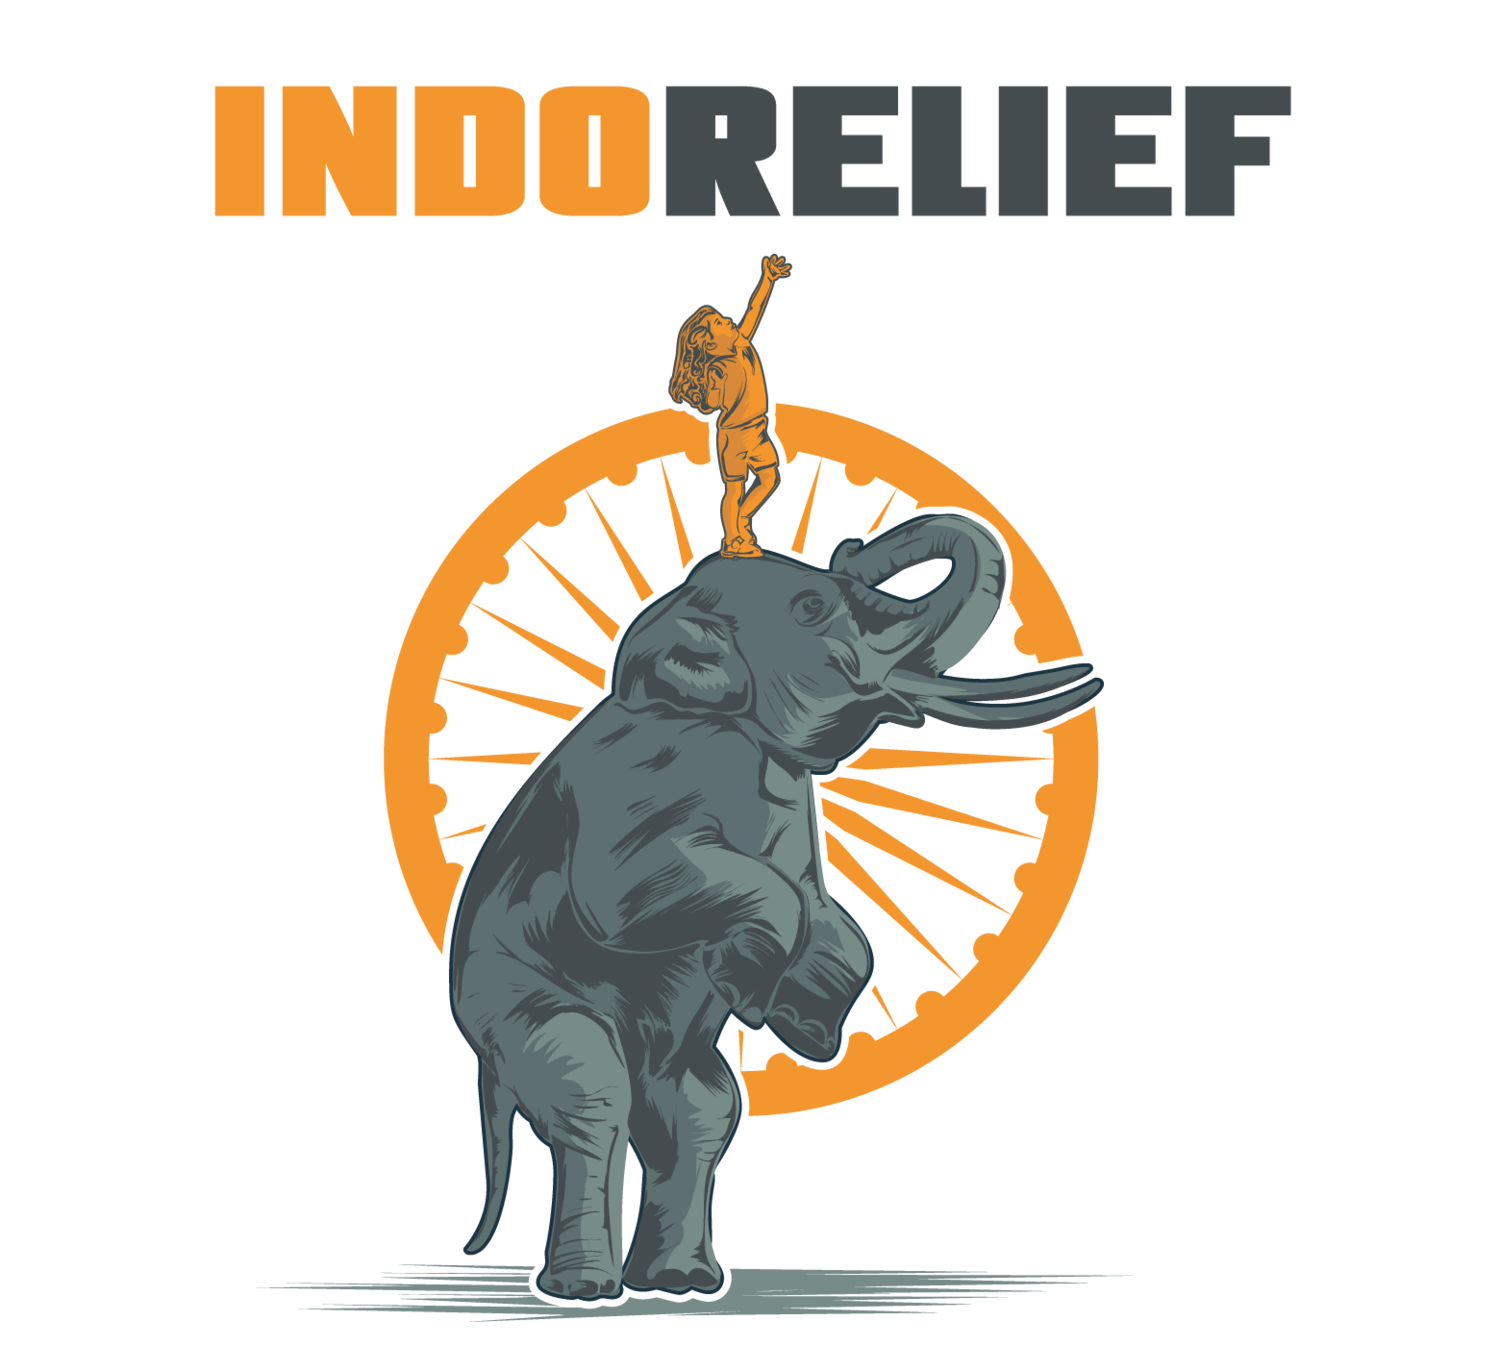 Tired clipart laborer. Mental peace clinic indorelief